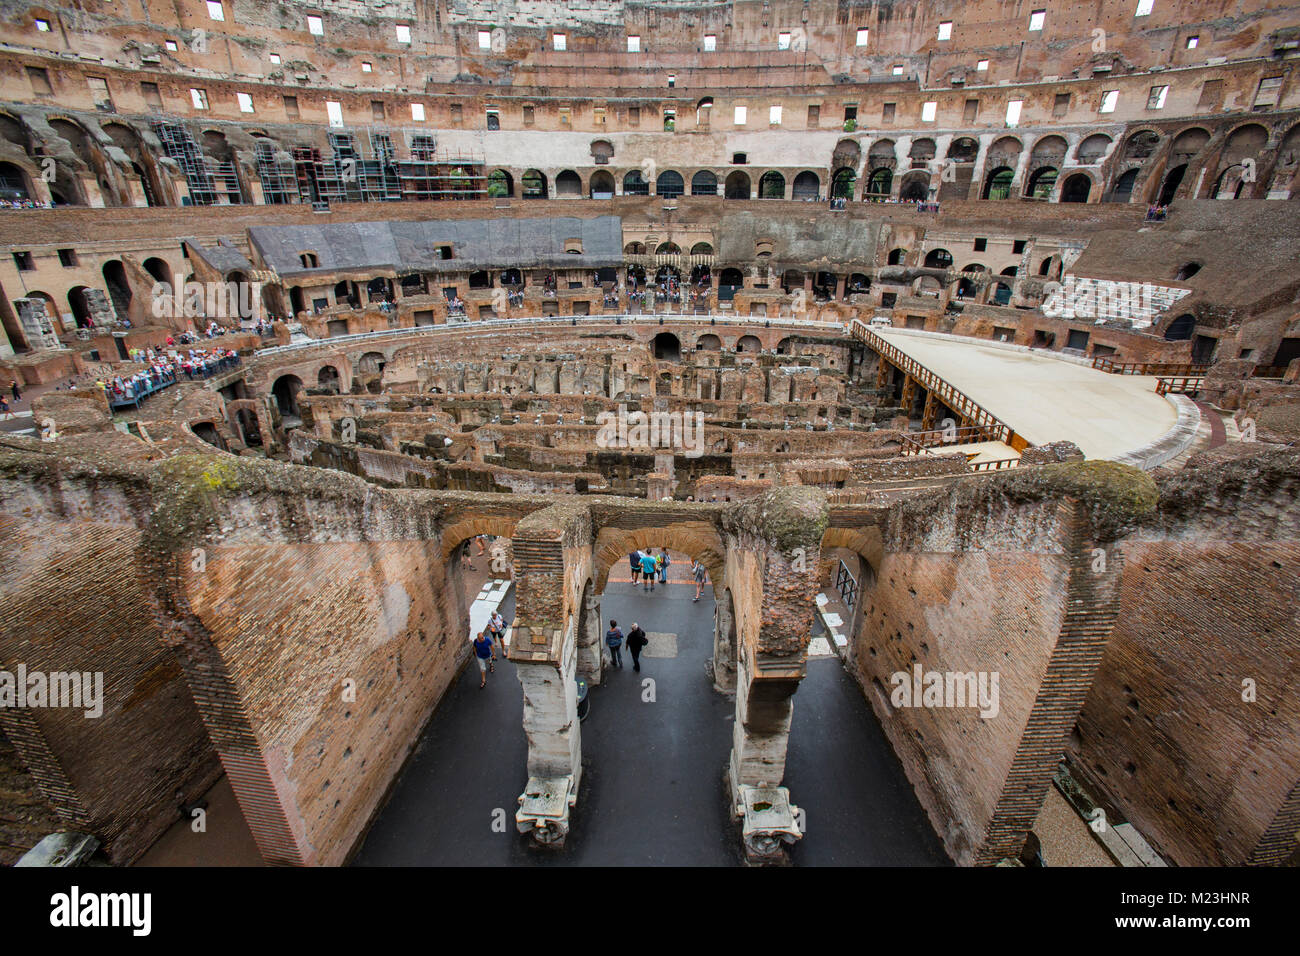 Hypogeum of the Colosseum in Rome, Italy Stock Photo - Alamy